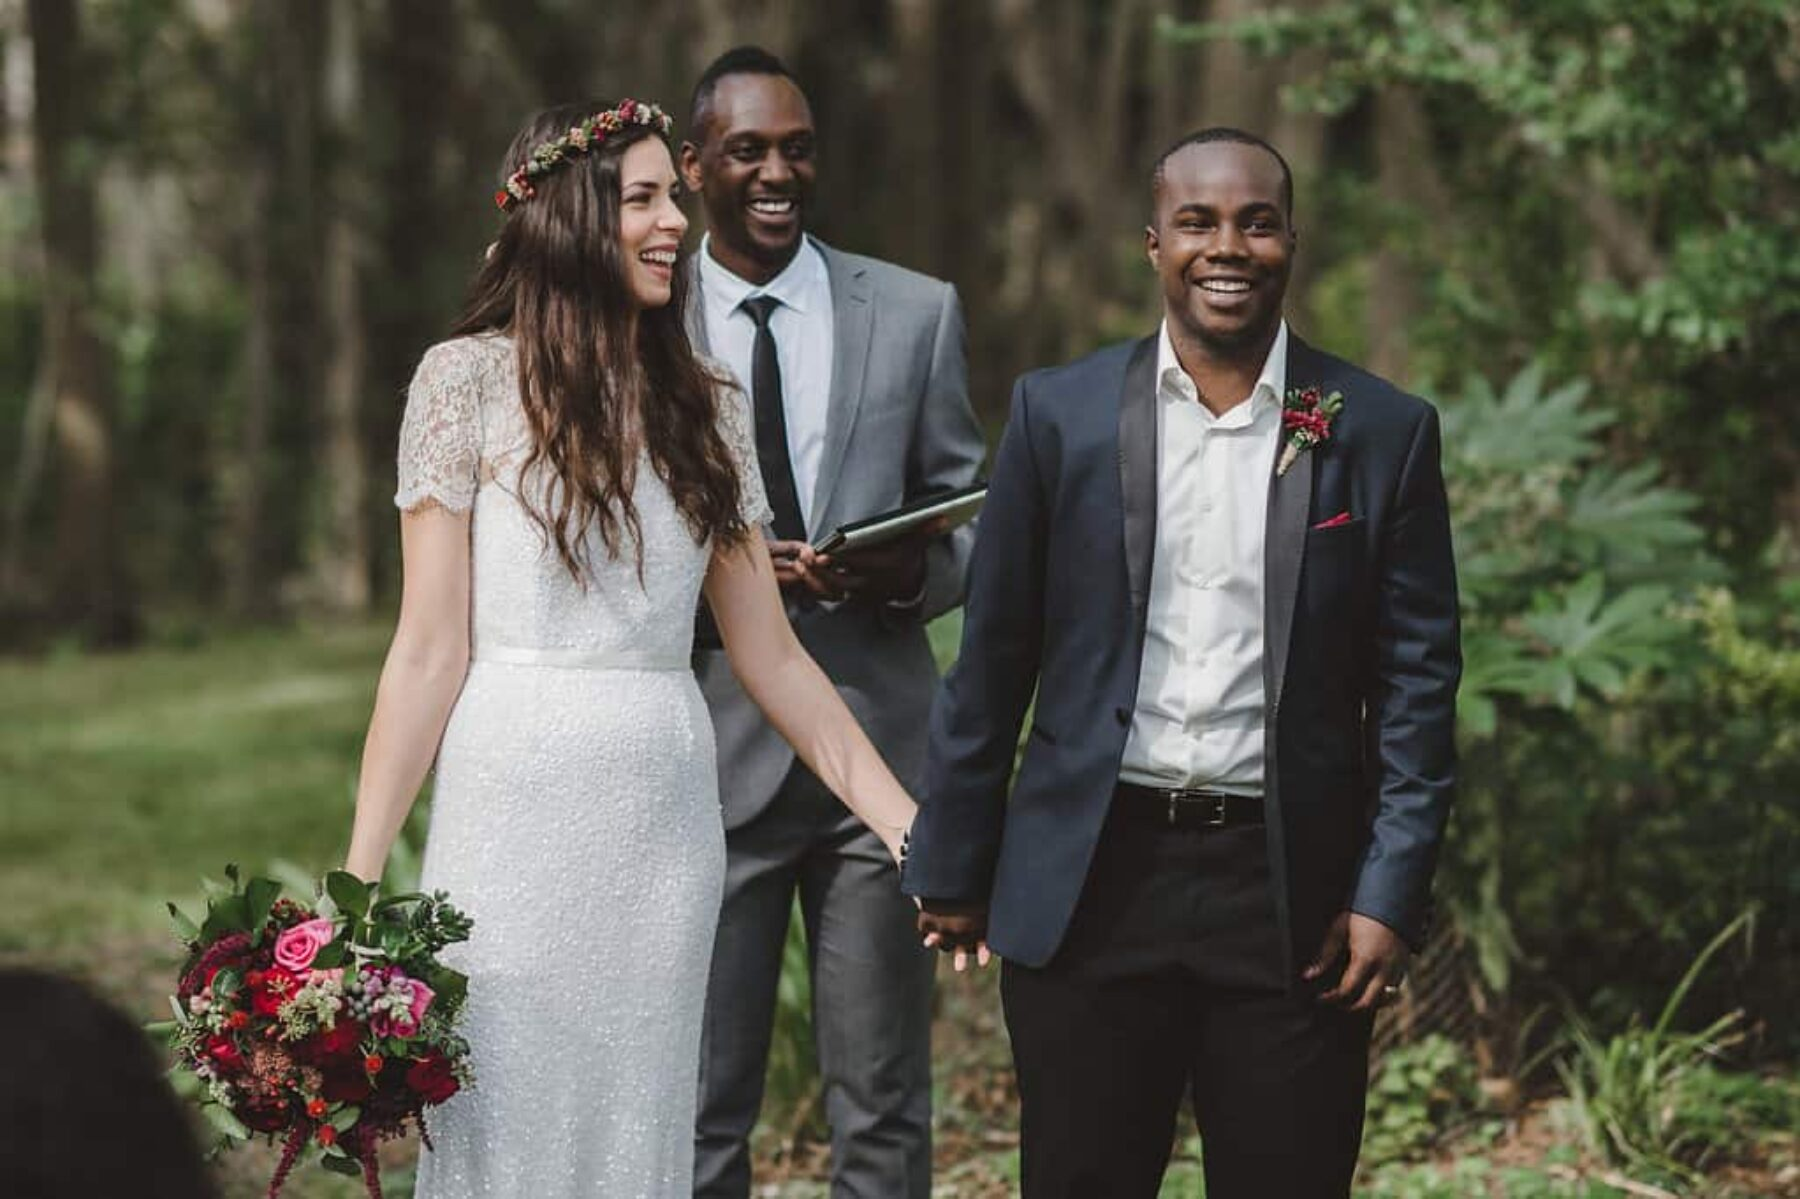 relaxed forest wedding at The Crisp Galleries - photography by Lauren Campbell